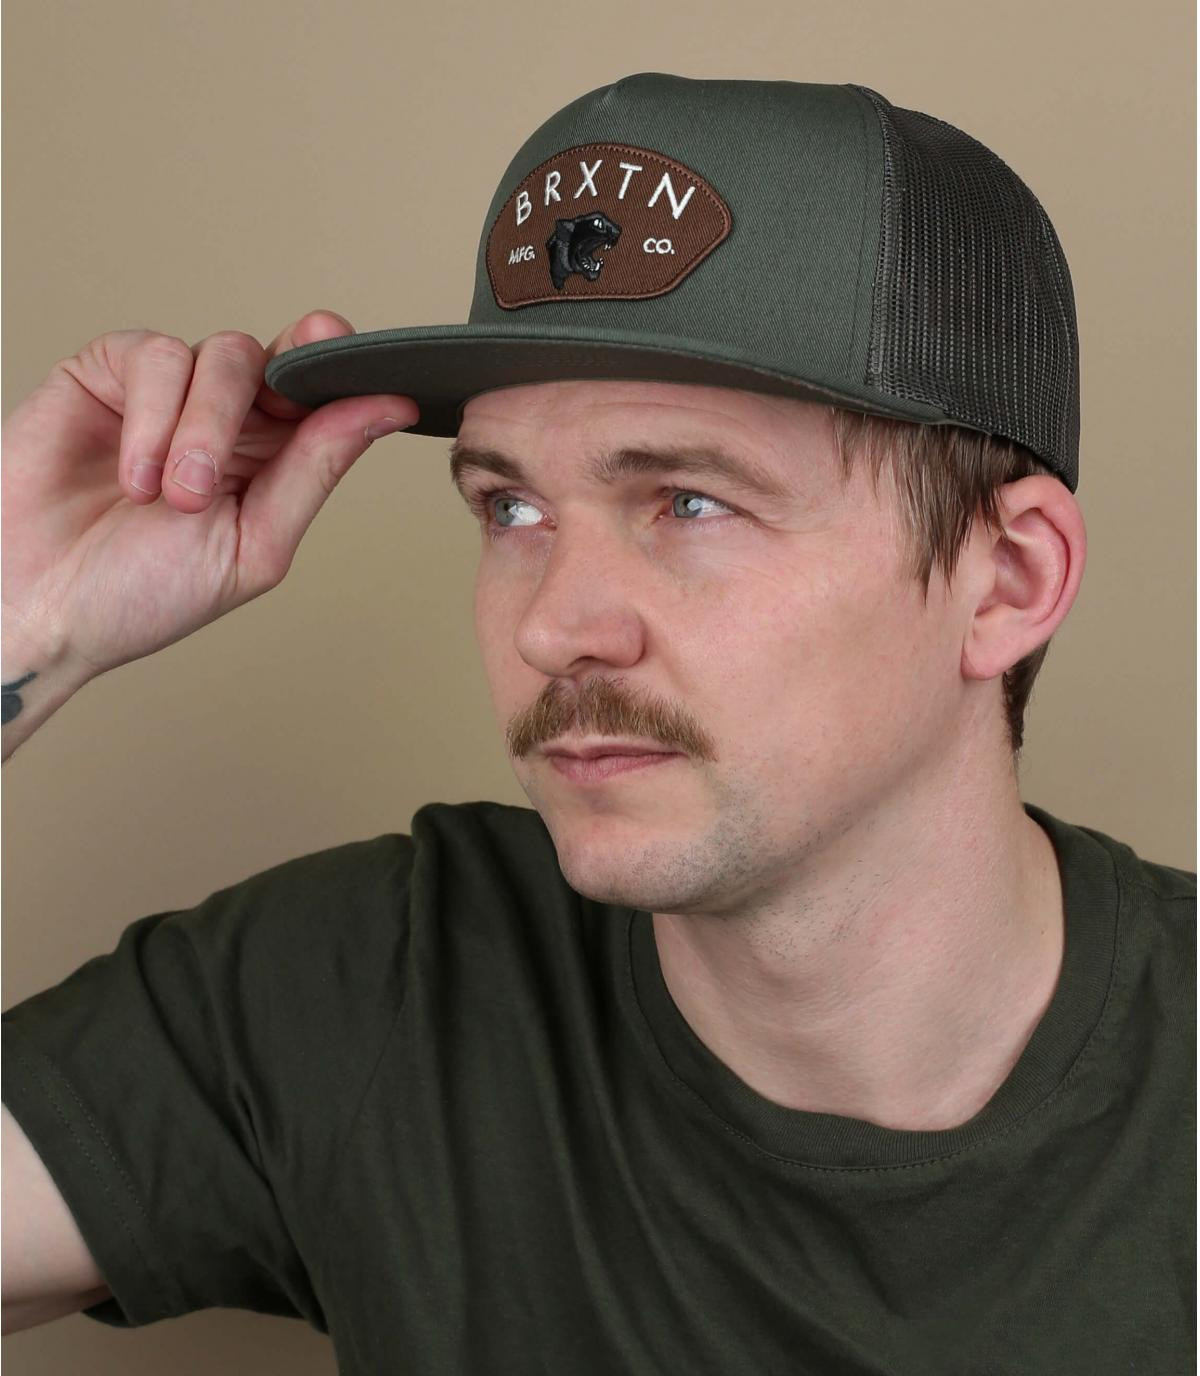 green Brixton trucker